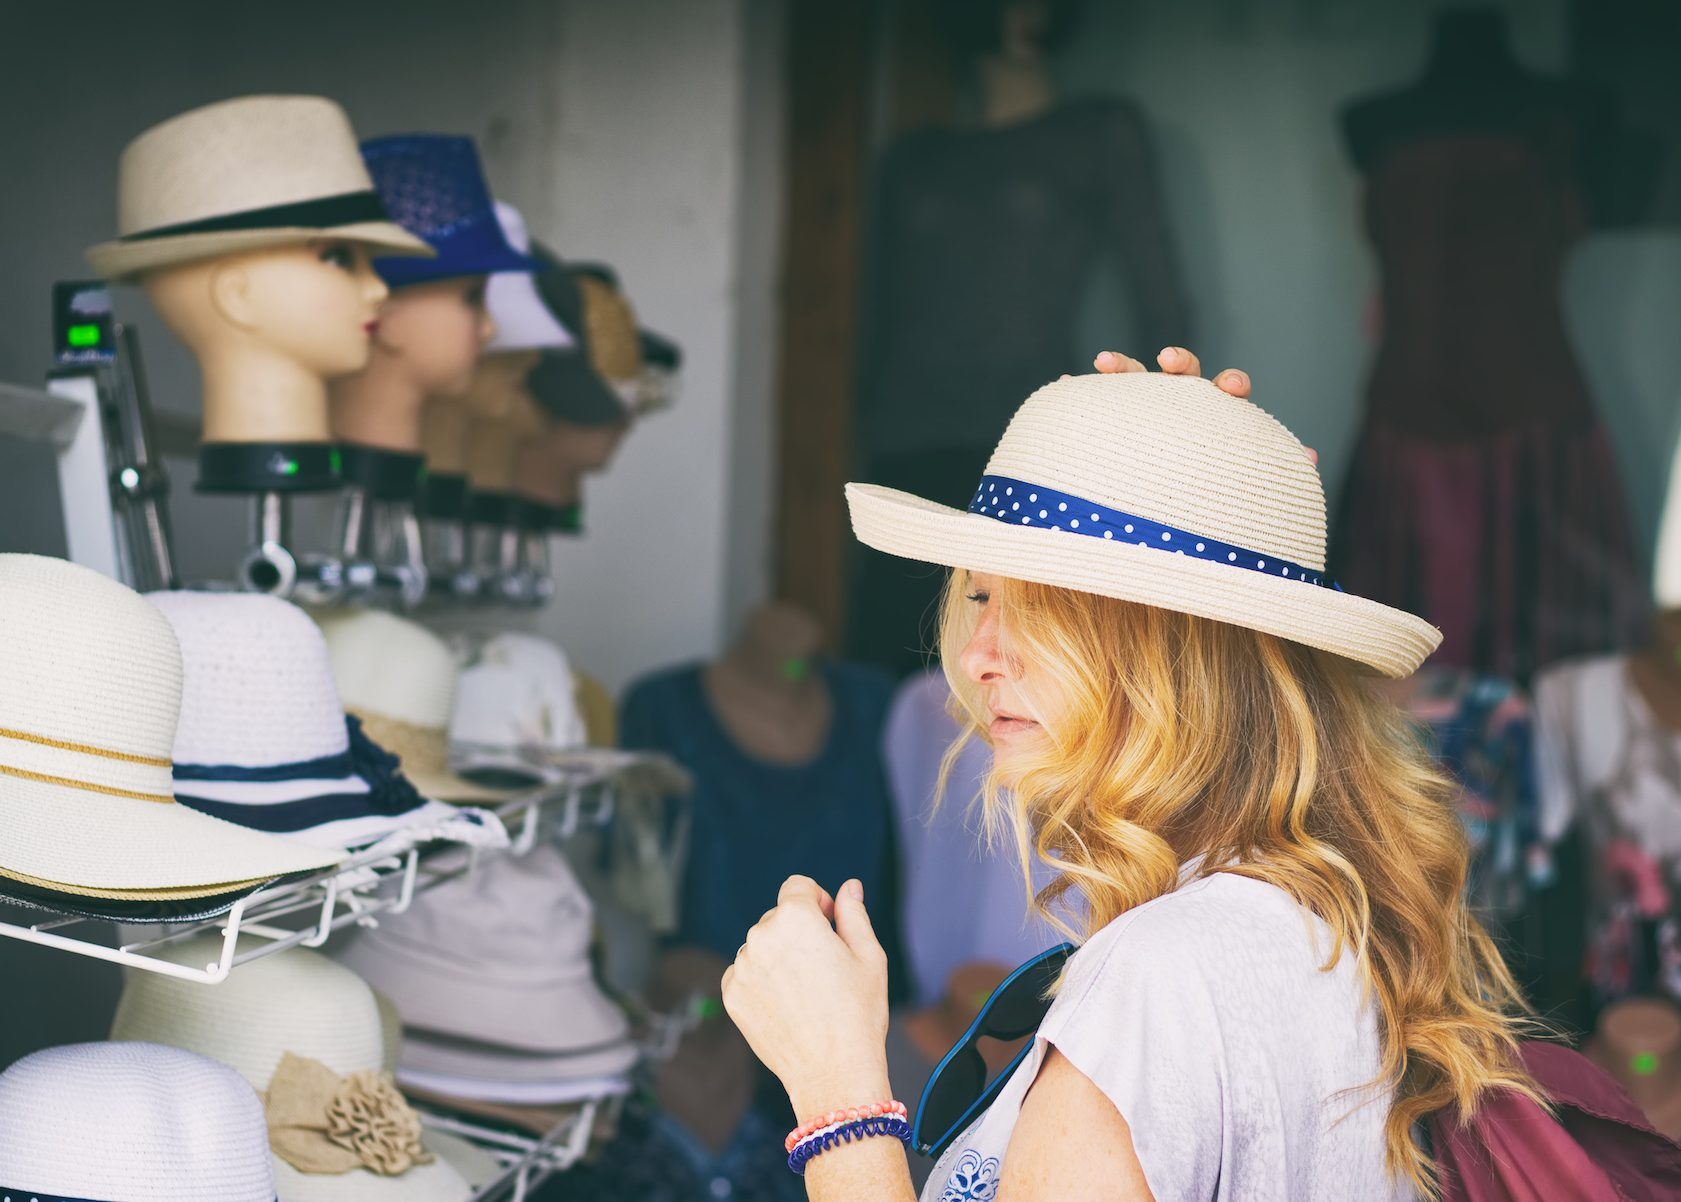 retail experience, evoking emotions